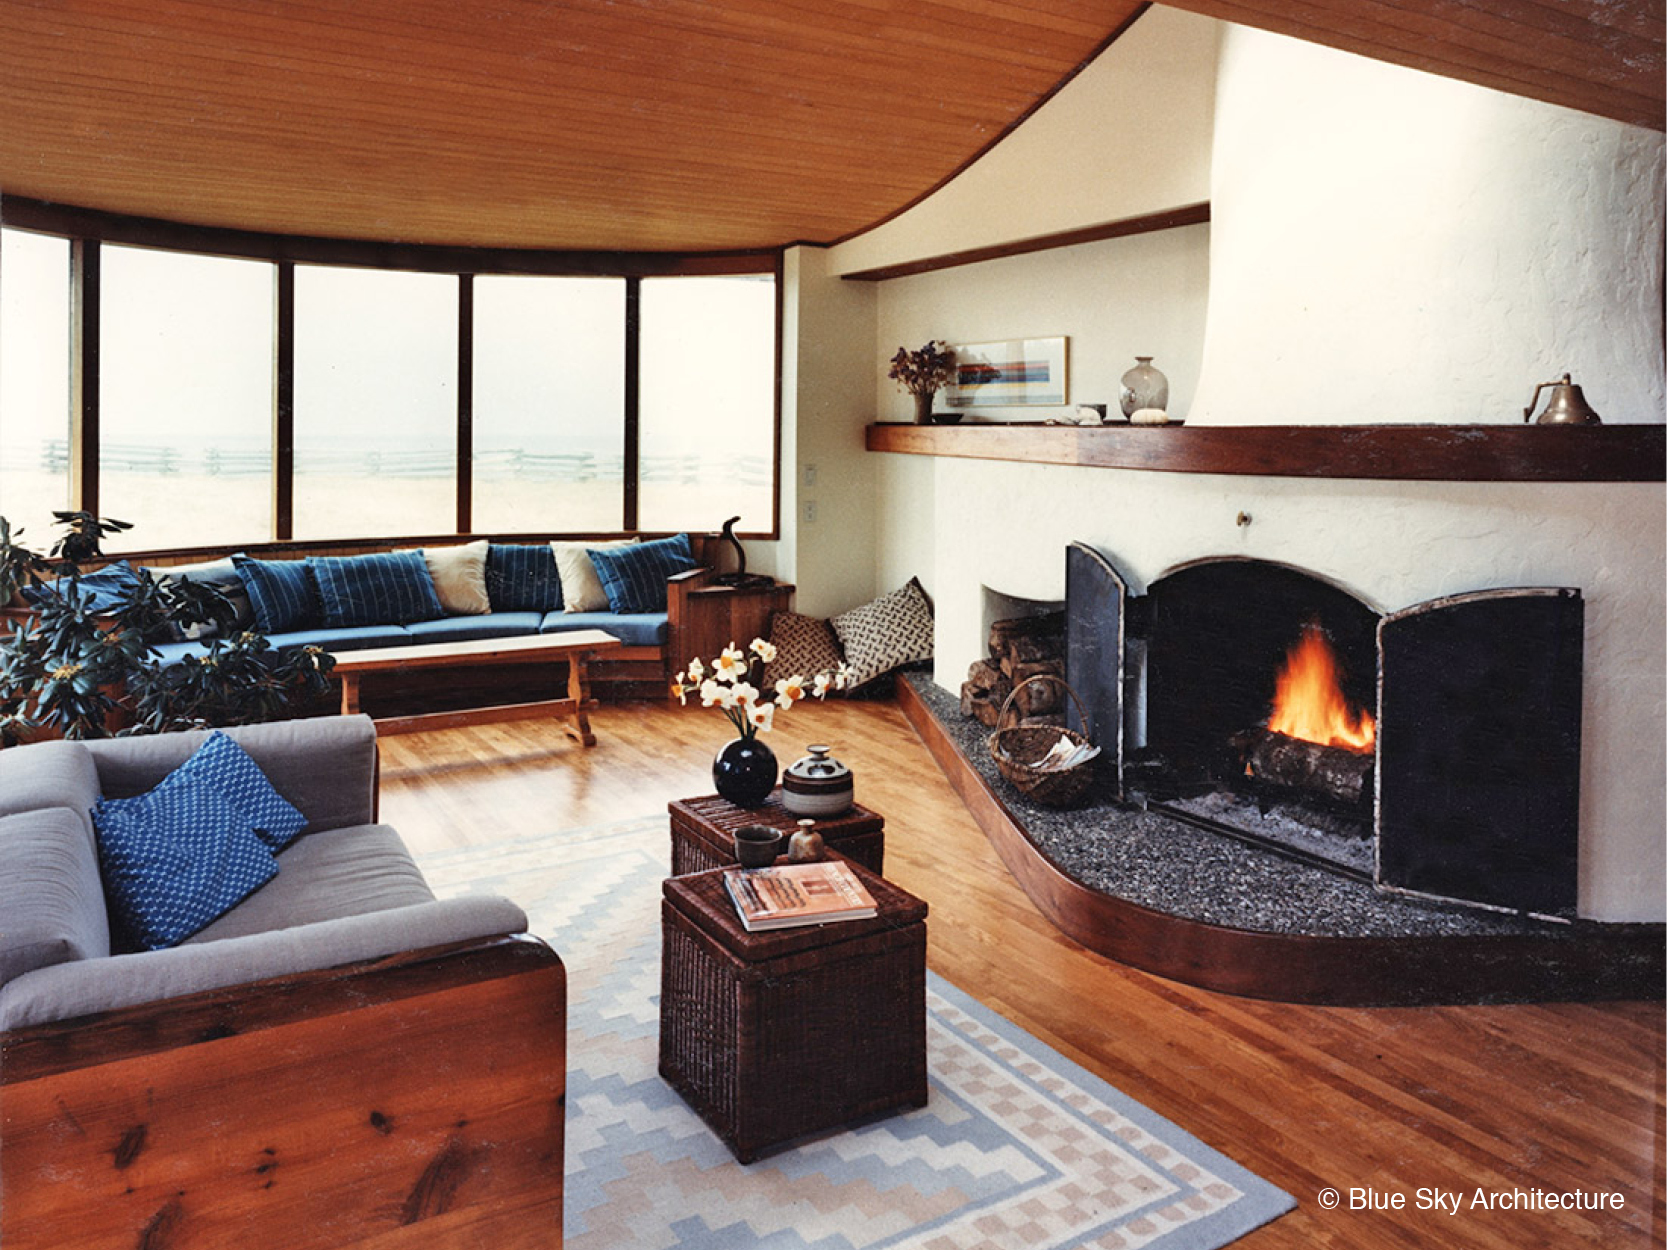 Interior Design with Custom Fireplace and Natural Materials